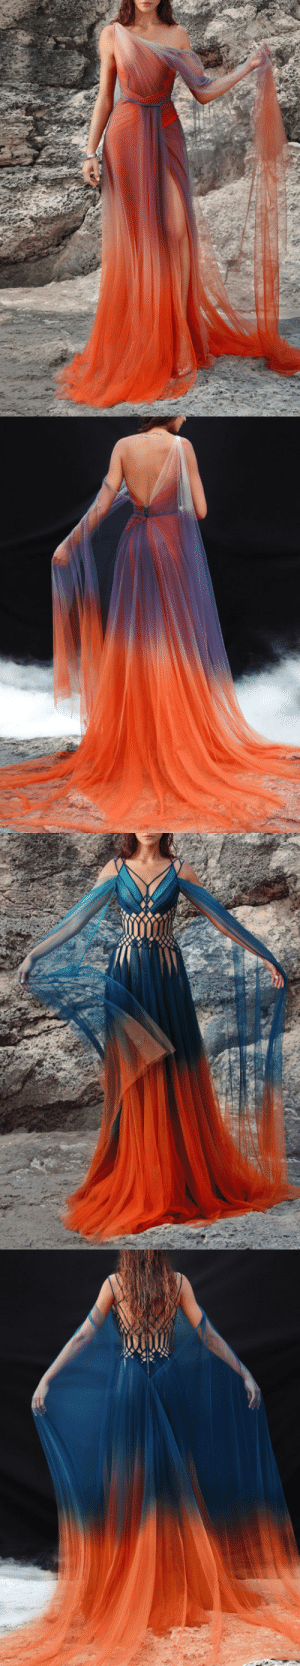 """chandelyer: Hassidris """"Ashes"""" spring 2019 collection: chandelyer: Hassidris """"Ashes"""" spring 2019 collection"""